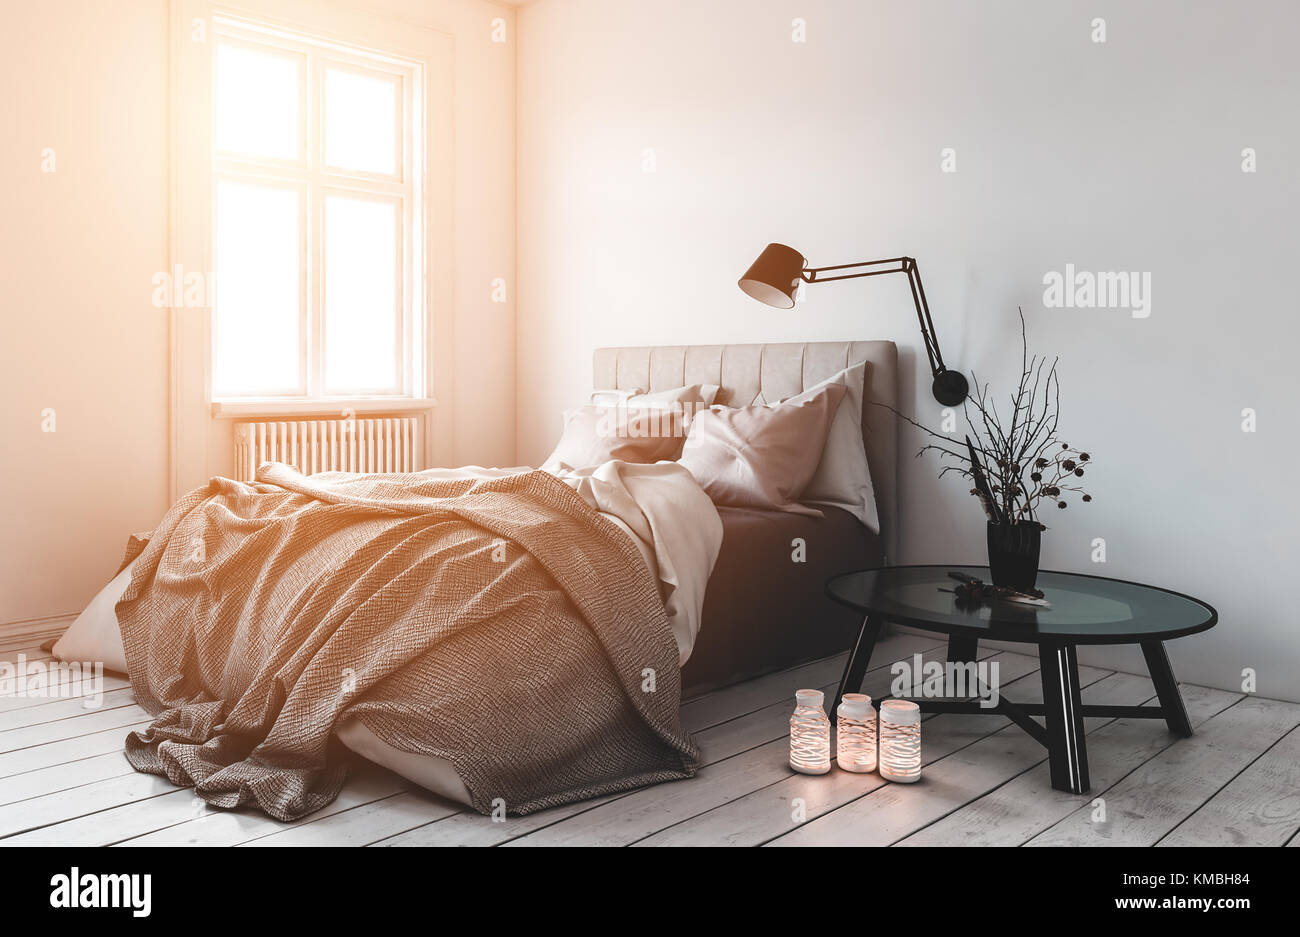 3D rendering of single messy bed in room with radiators under windows. Lit candles on hardwood floor. - Stock Image